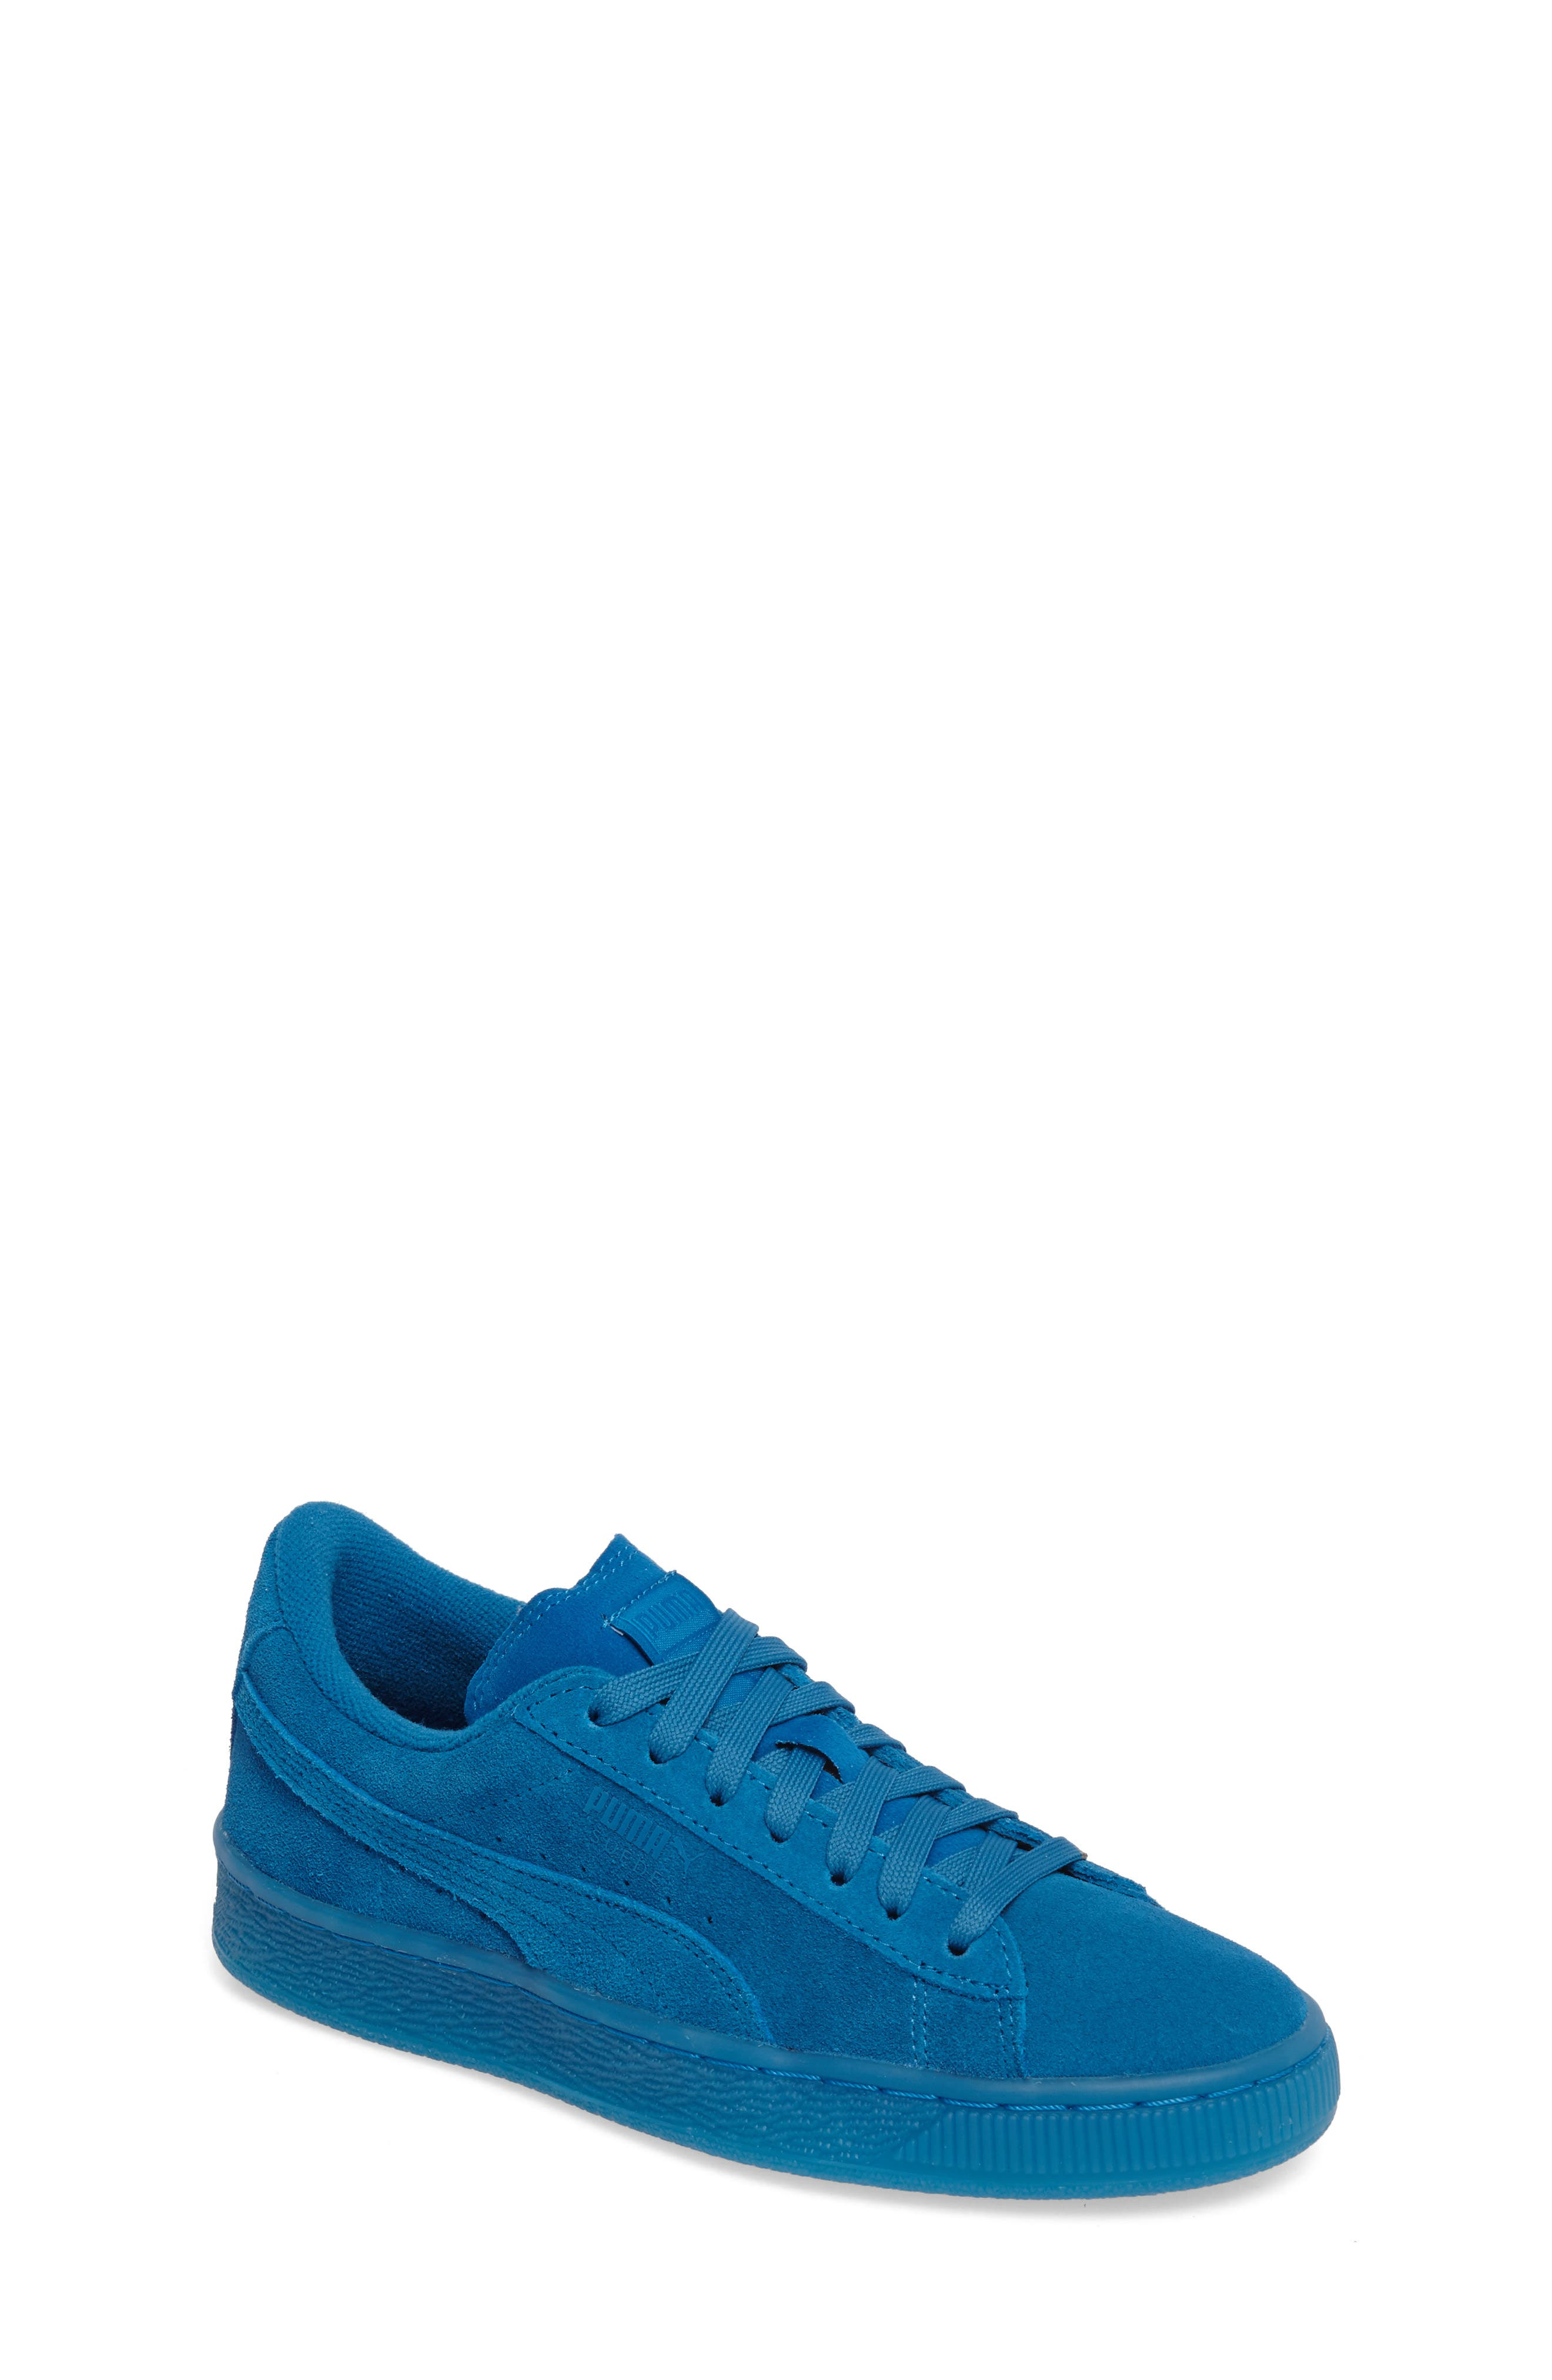 'Suede Iced' Sneaker,                             Main thumbnail 1, color,                             460